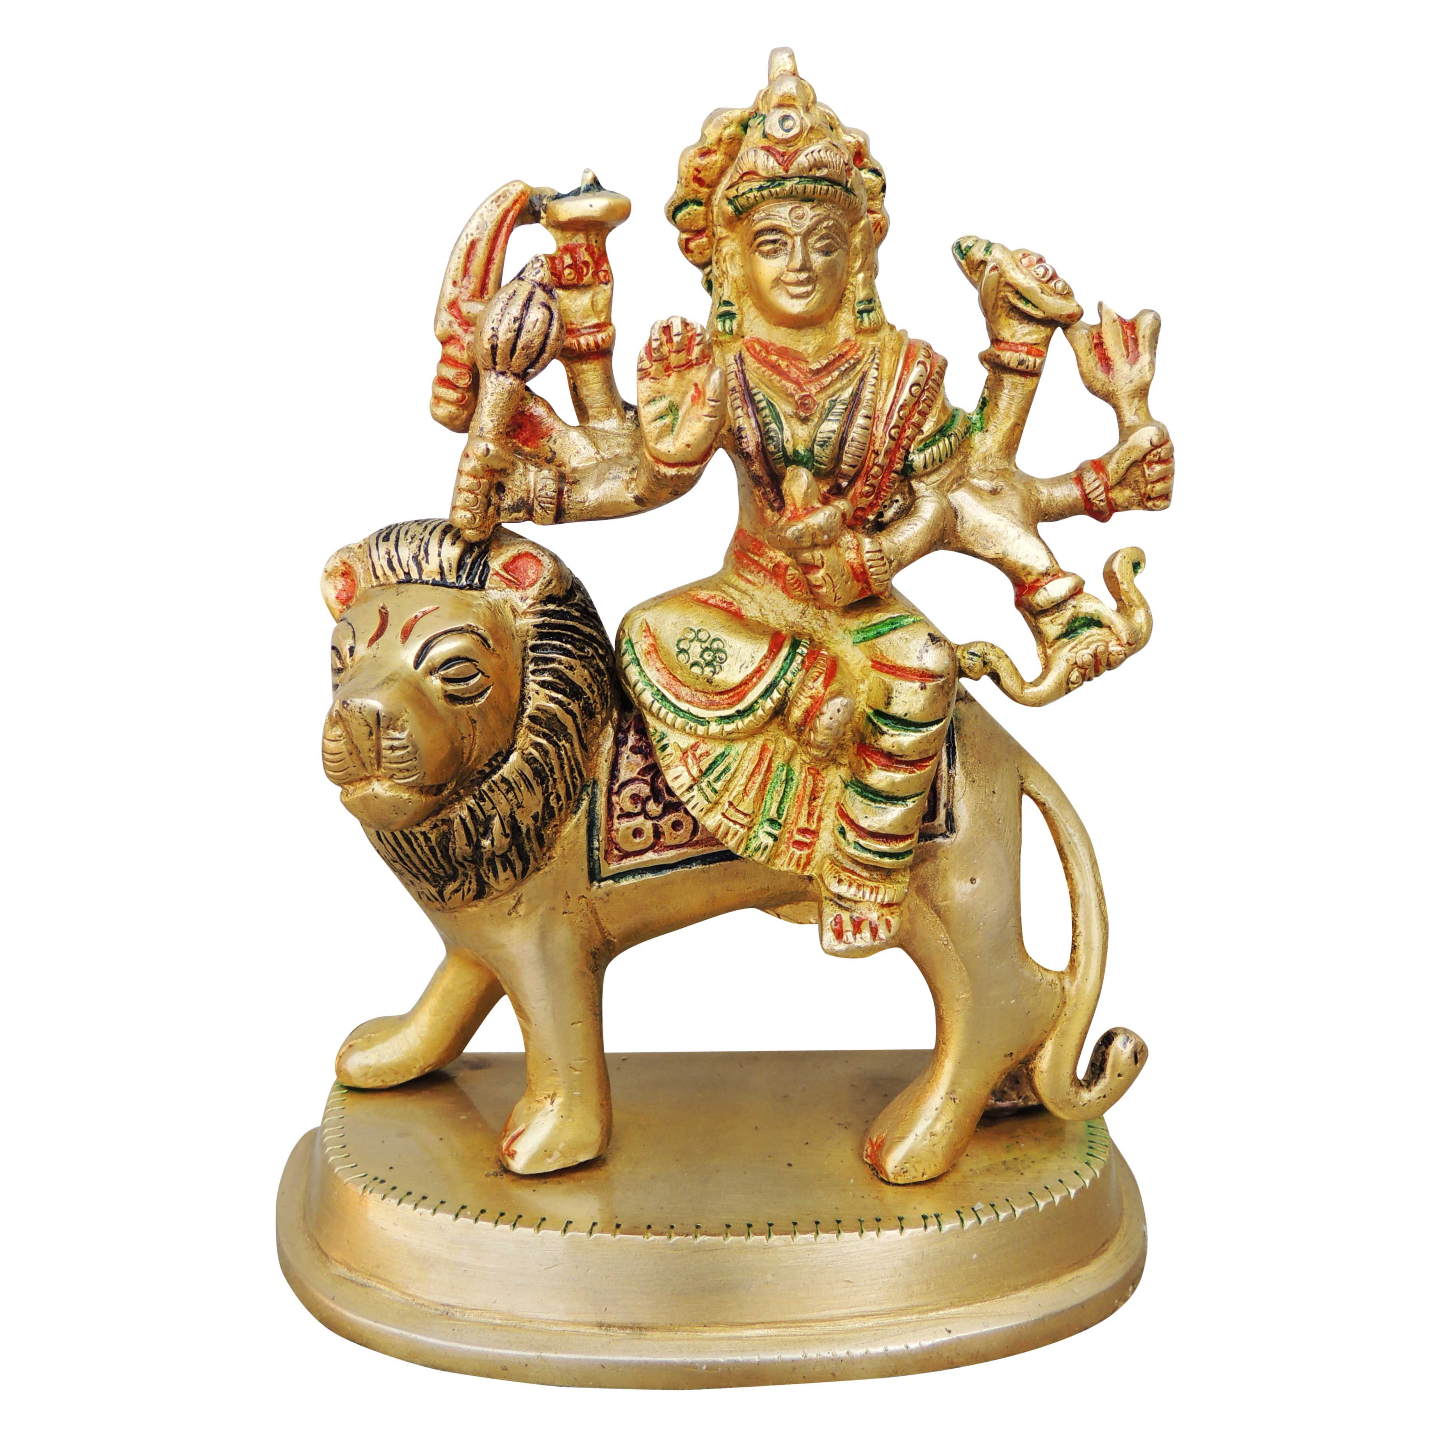 Brass Durga Ji StatueMurtiIdol With Multicolour Lacquer Finish-5.7 Inch BS937 A